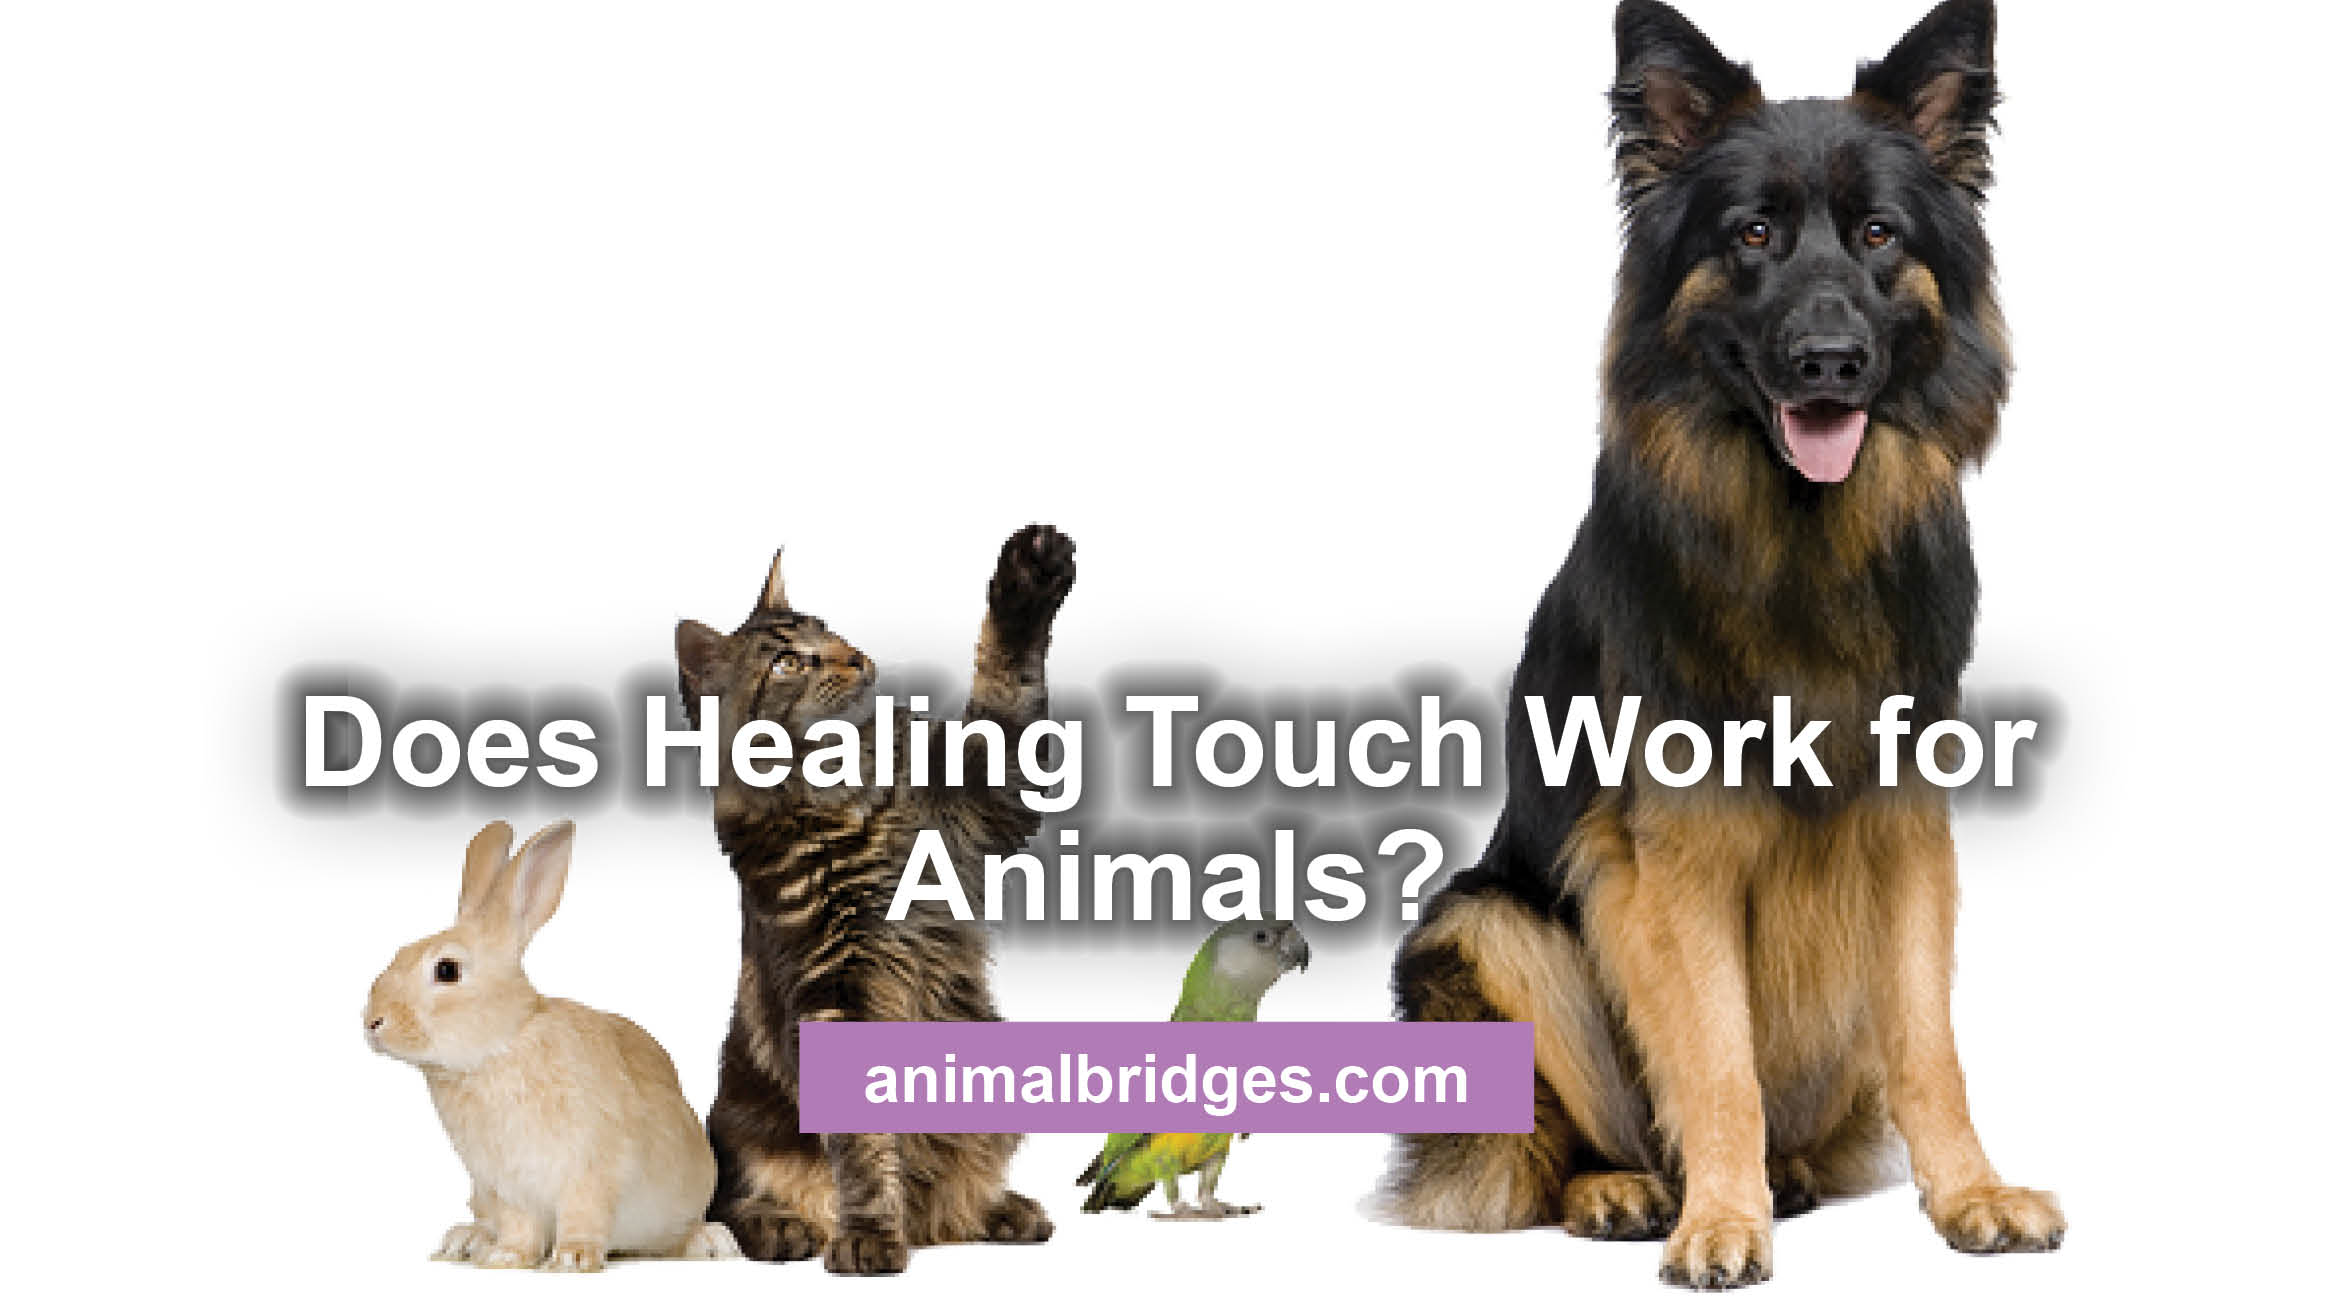 Does Healing Touch Work for Animals?